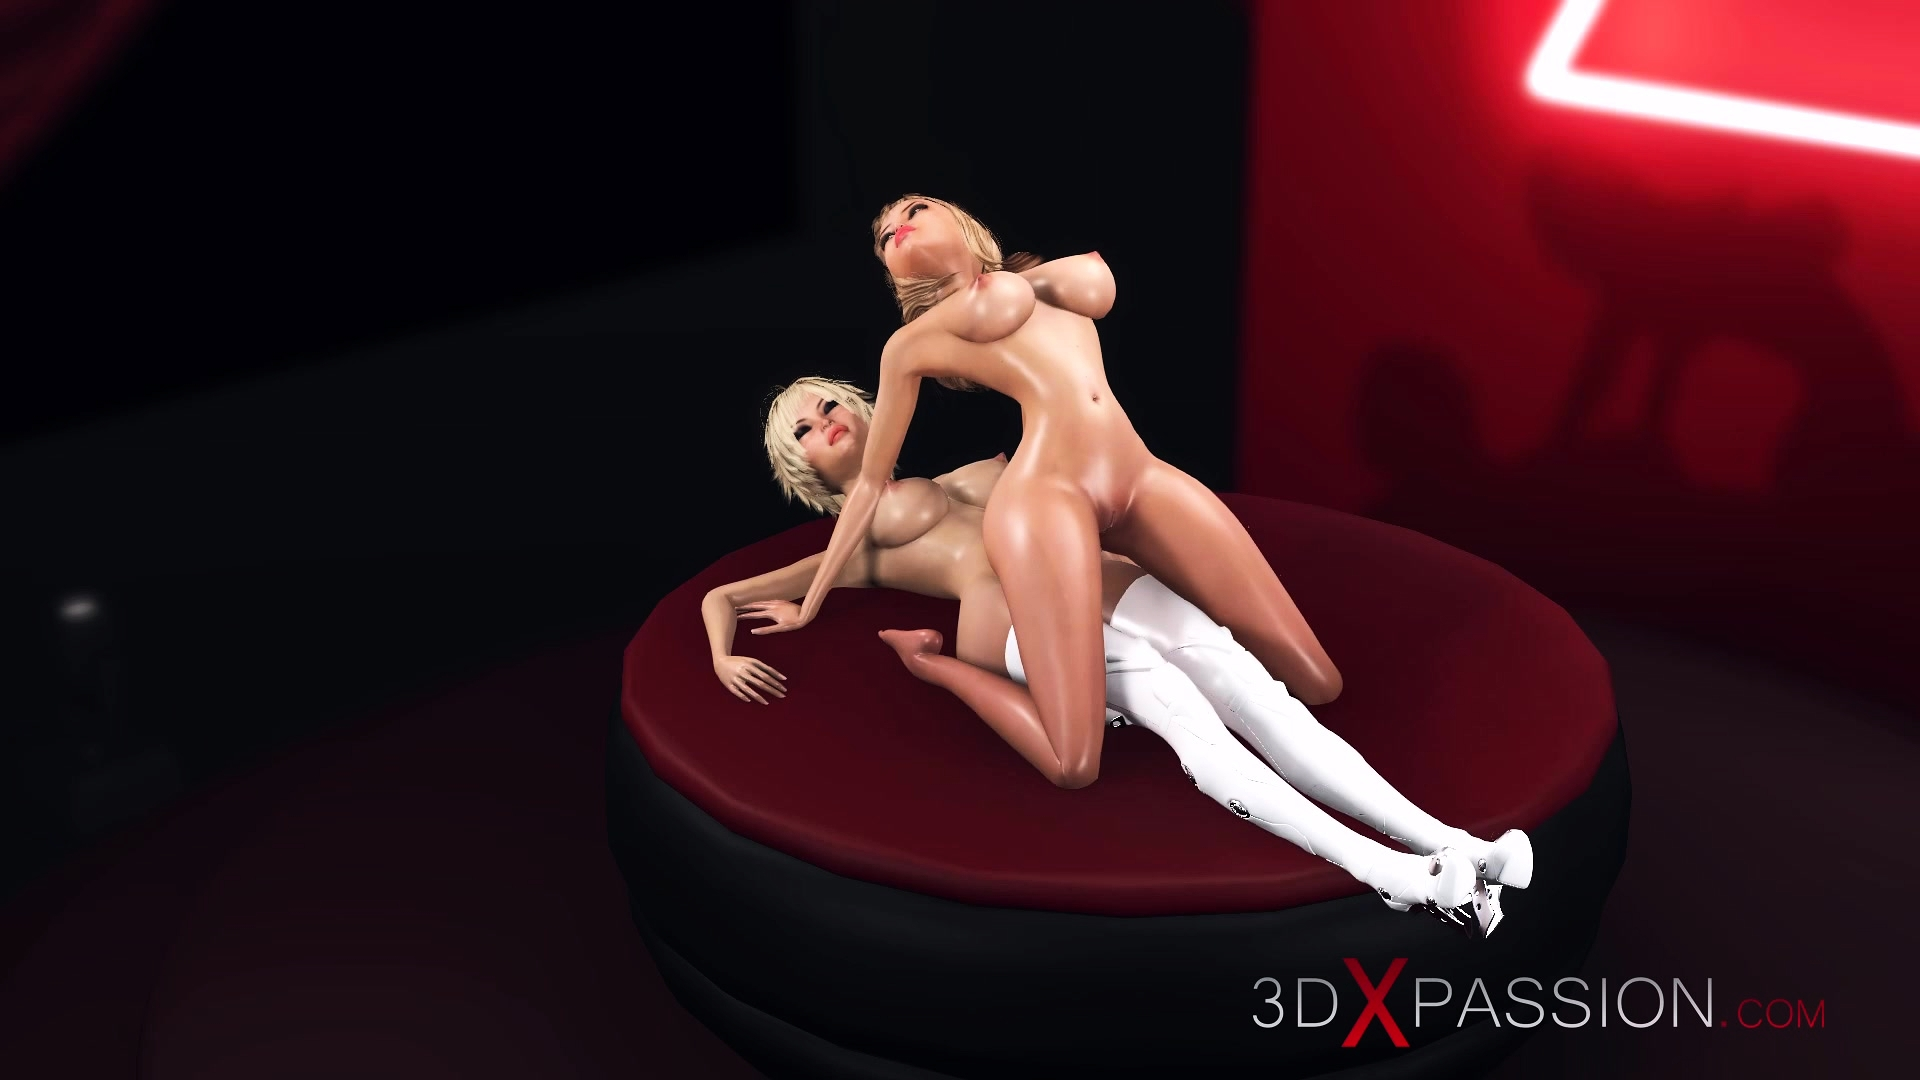 3D Shemale Videos free mobile porn & sex videos & sex movies - 3d shemale